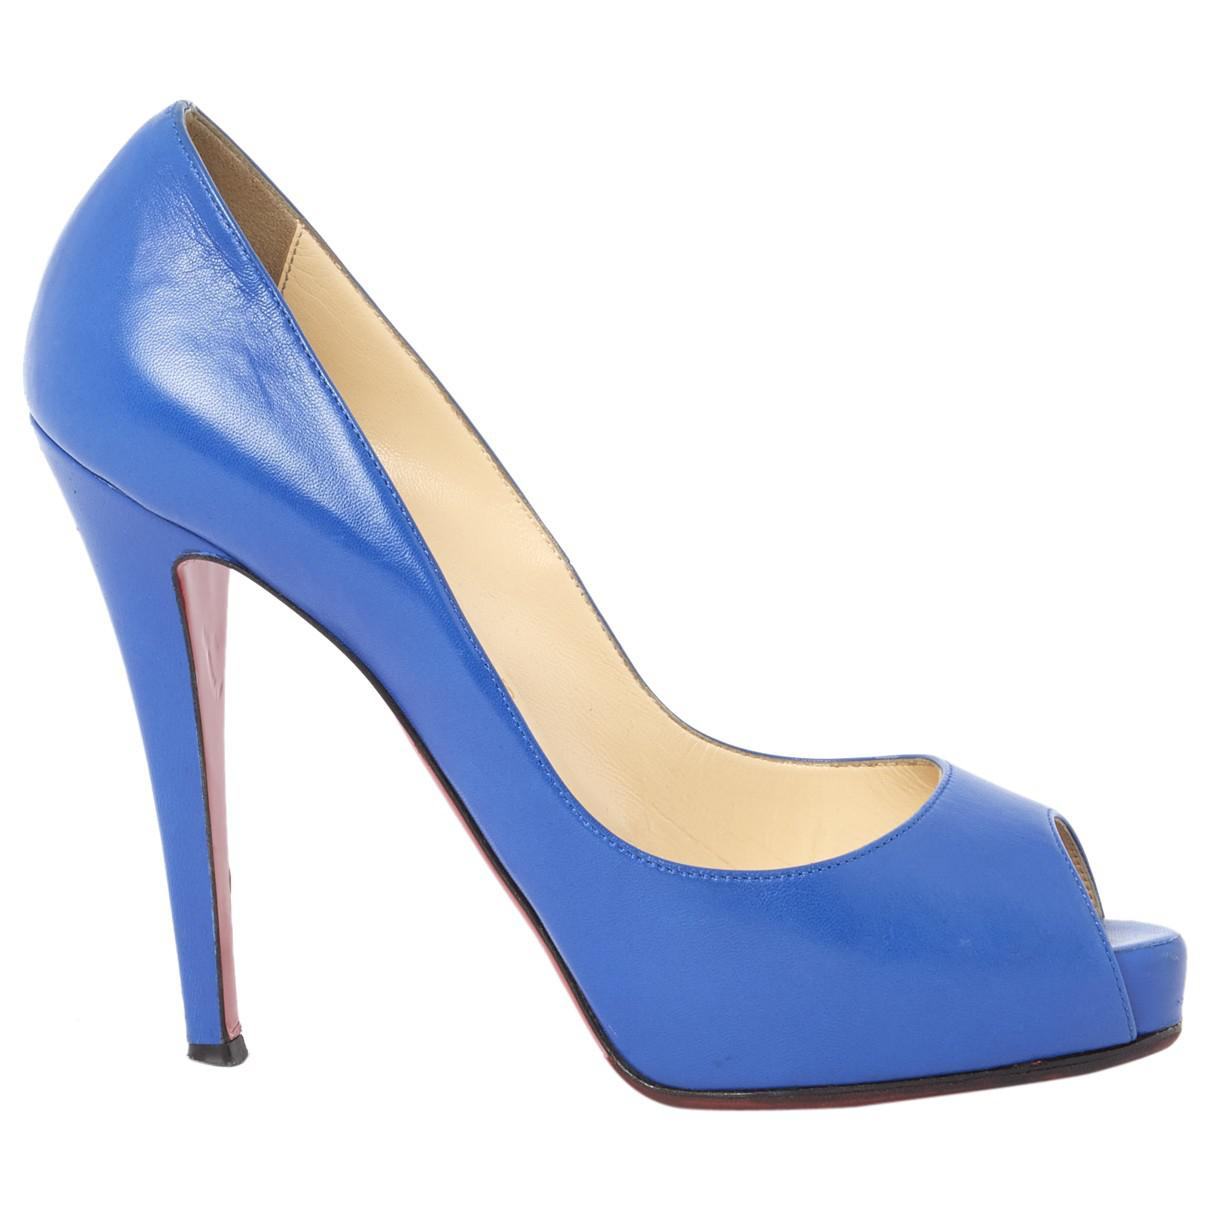 Pre-owned - Very Privé leather court shoes Christian Louboutin 7fzIq8b